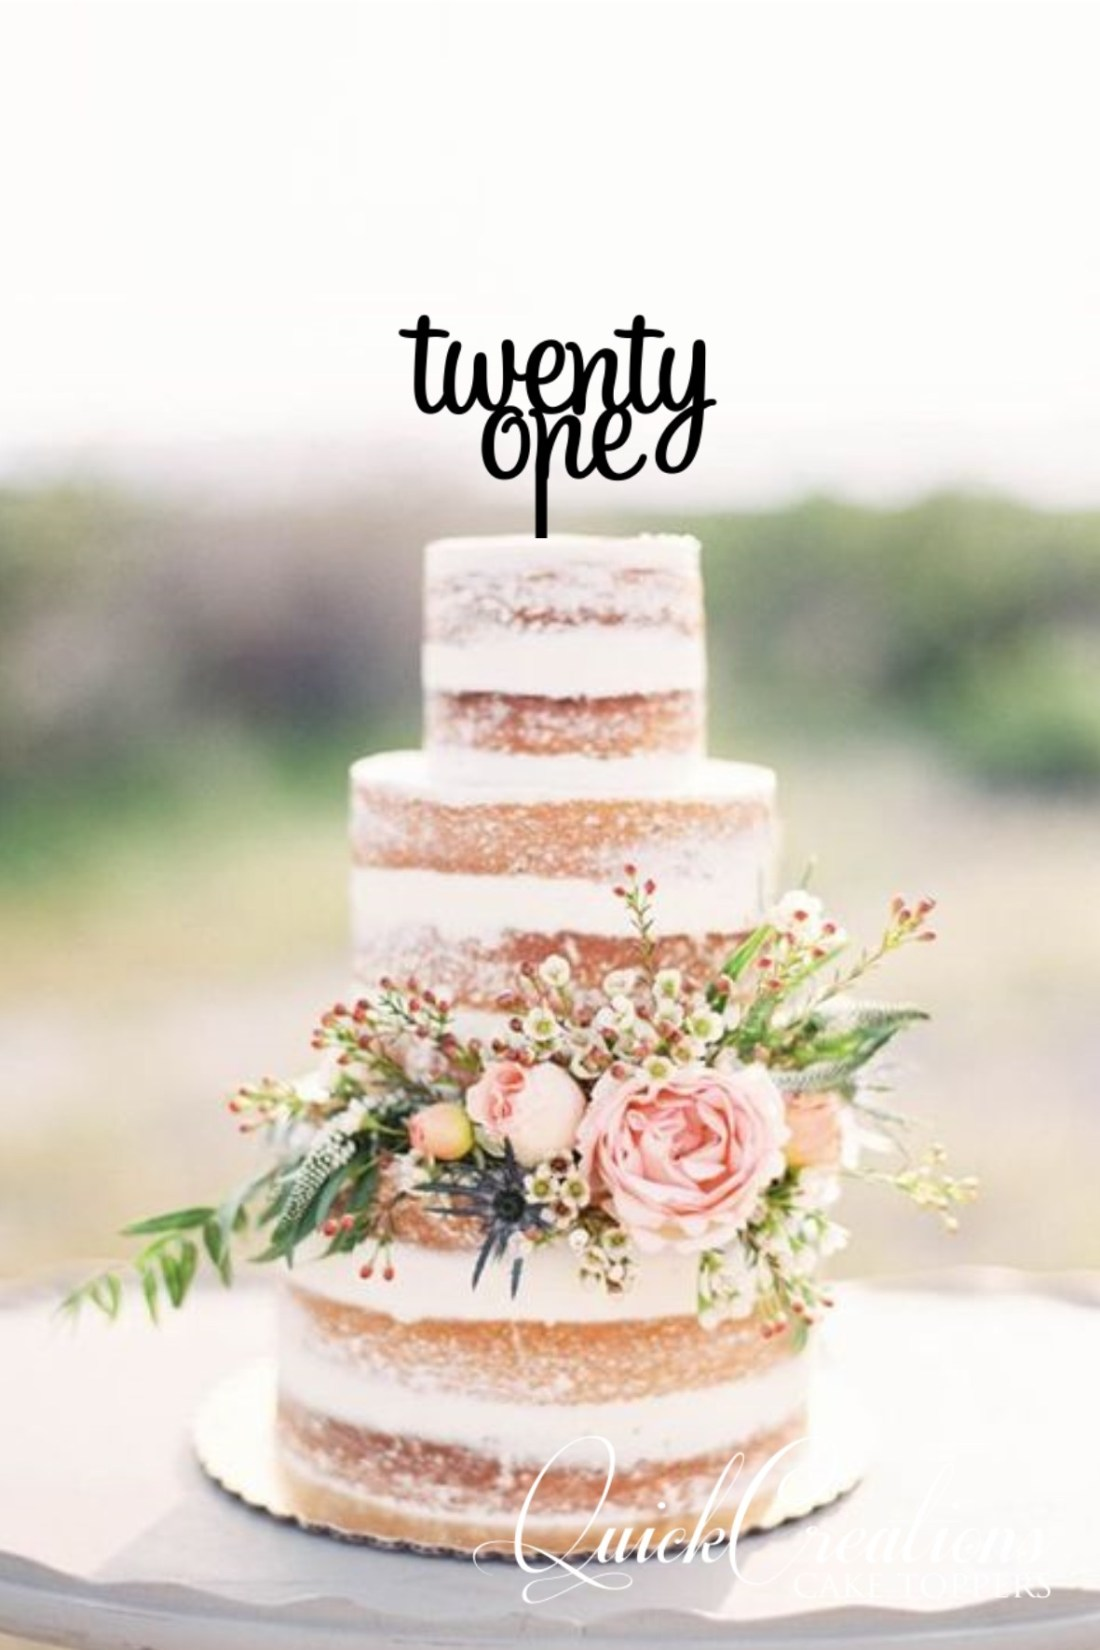 Quick Creations Cake Topper - twenty one v3